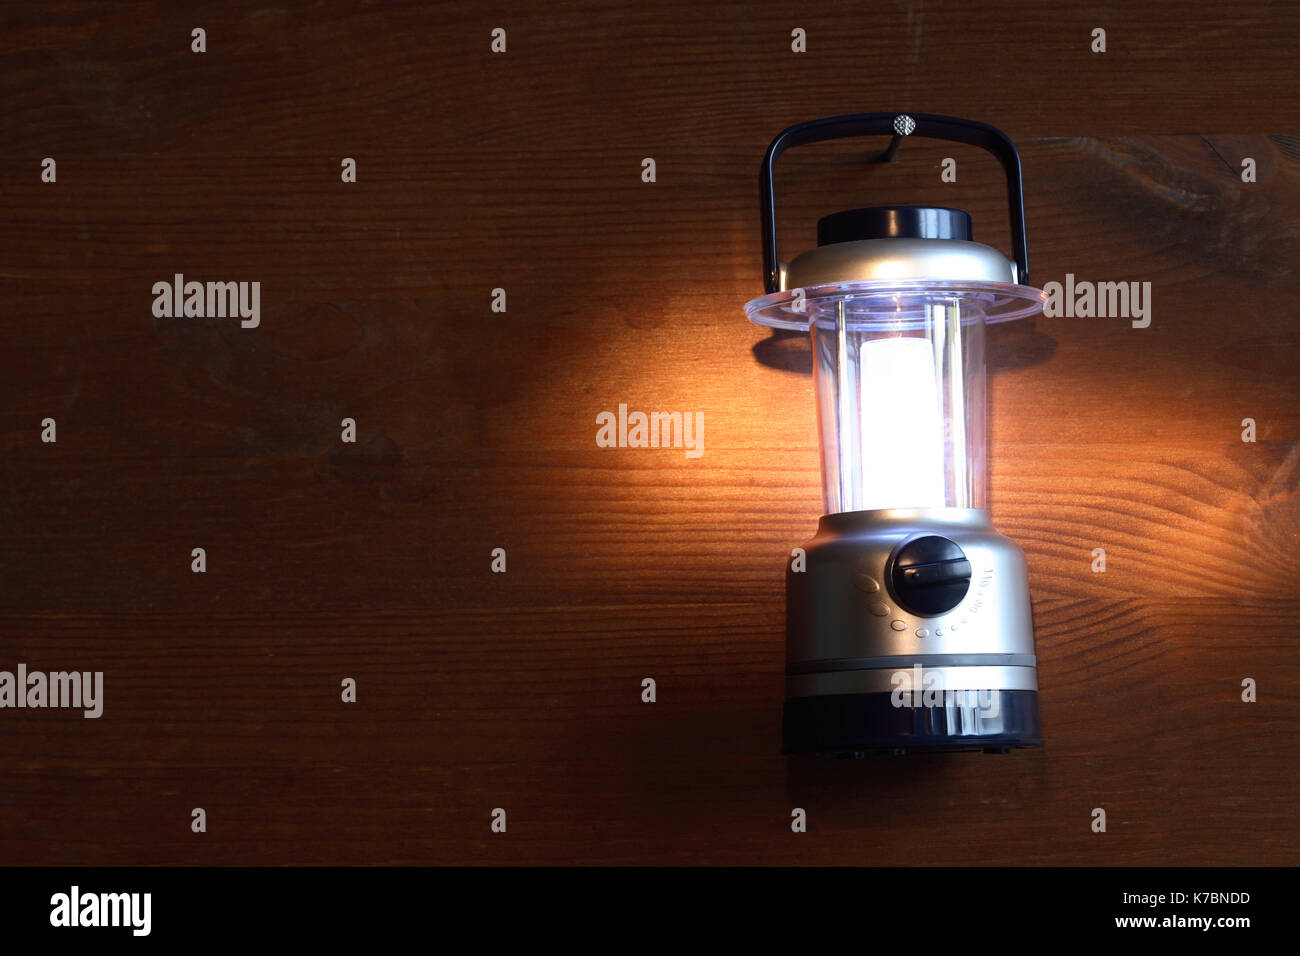 Modern Battery Powered Camping Lamp Hanging With Nail On Wooden Stock Photo Alamy